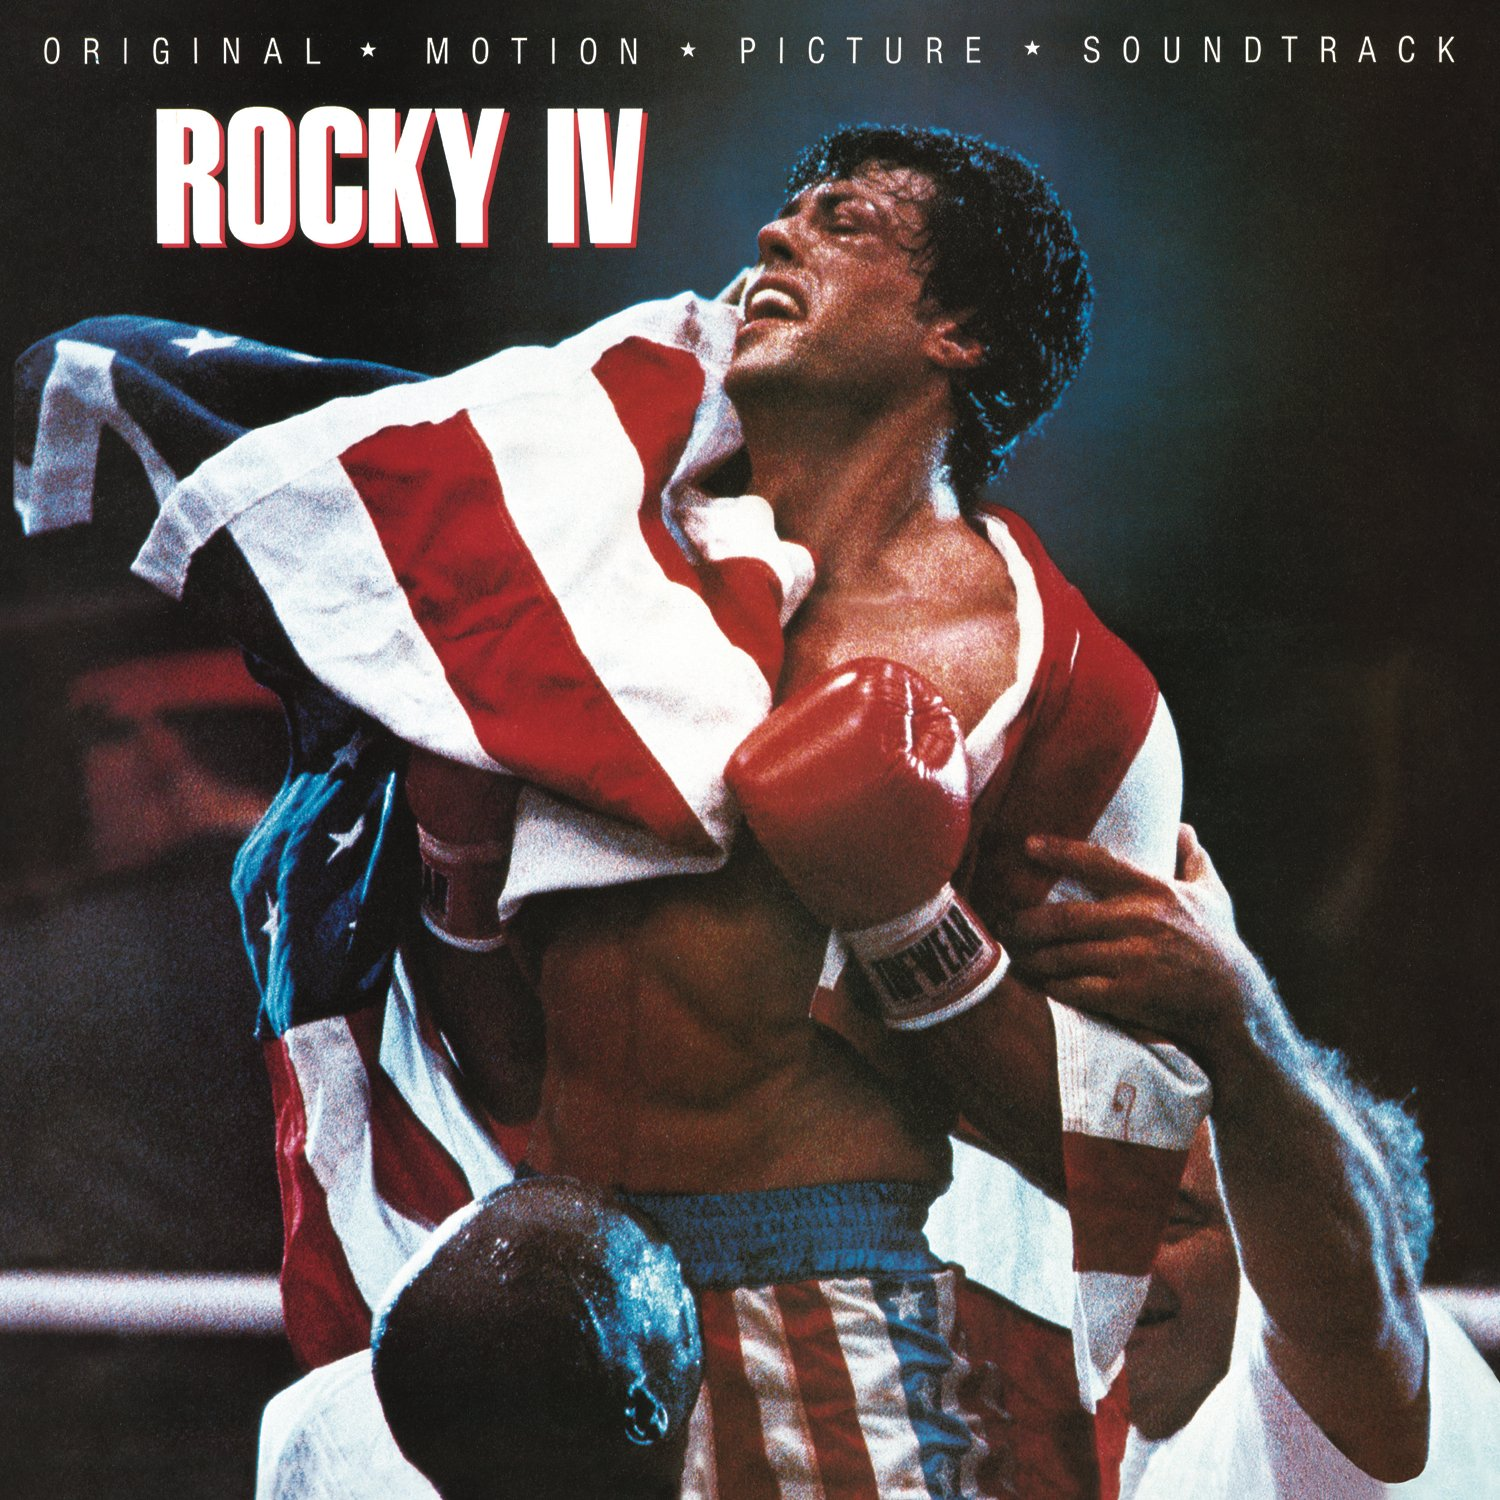 Vinilo : Rocky Iv (Original Soundtrack) (LP Vinyl)